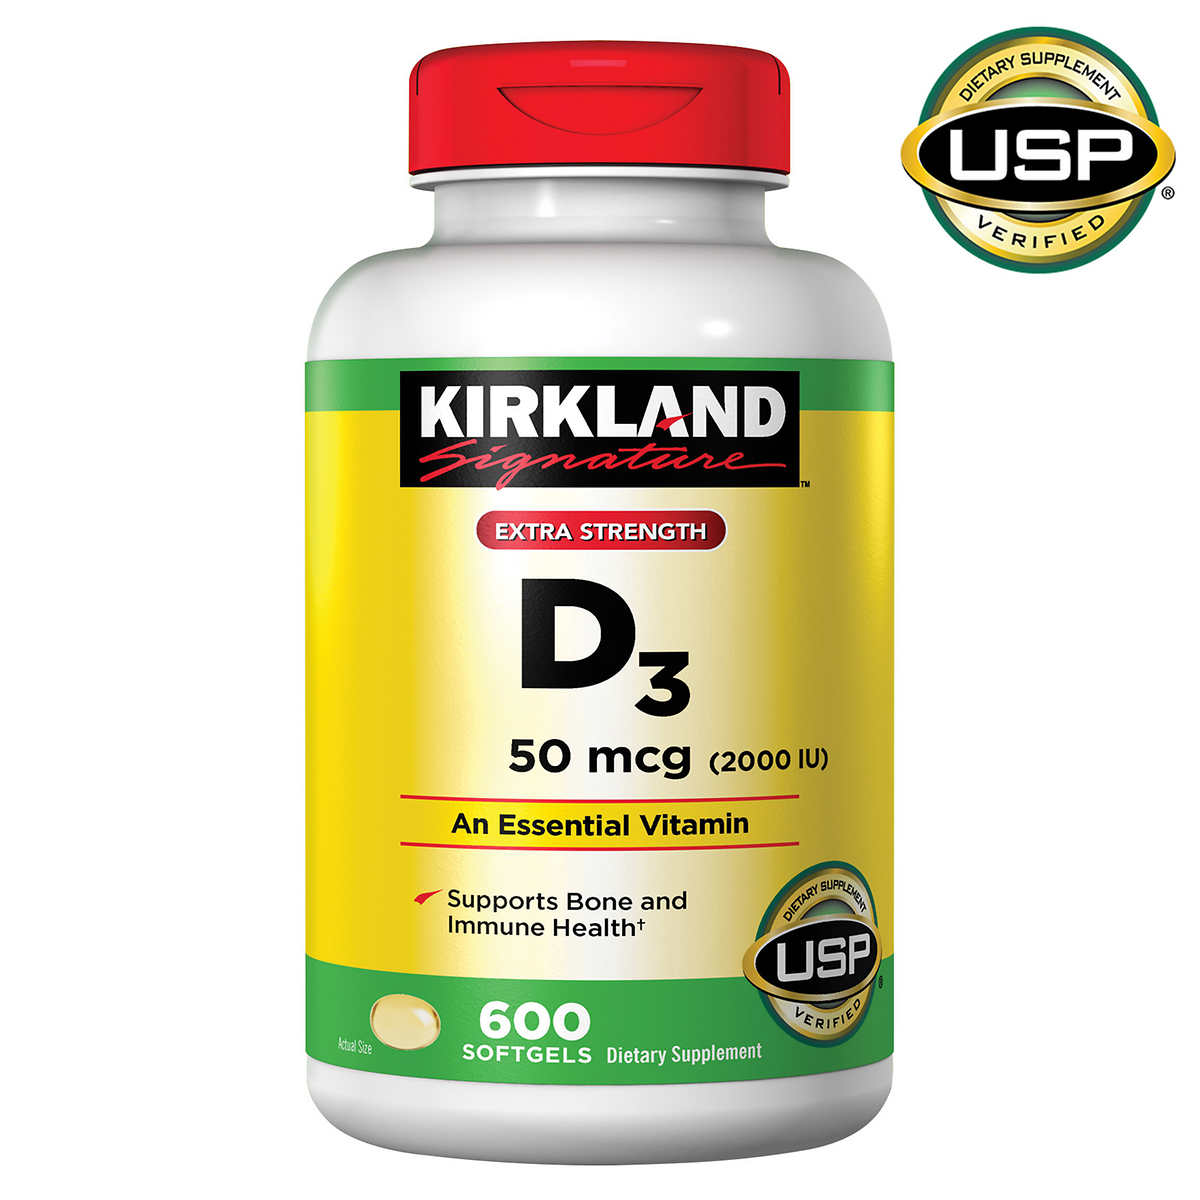 kirkland d3 vitamin 2000 signature iu costco 600 softgels mcg vitamins tablets extra usp verified strength multi coupons january description